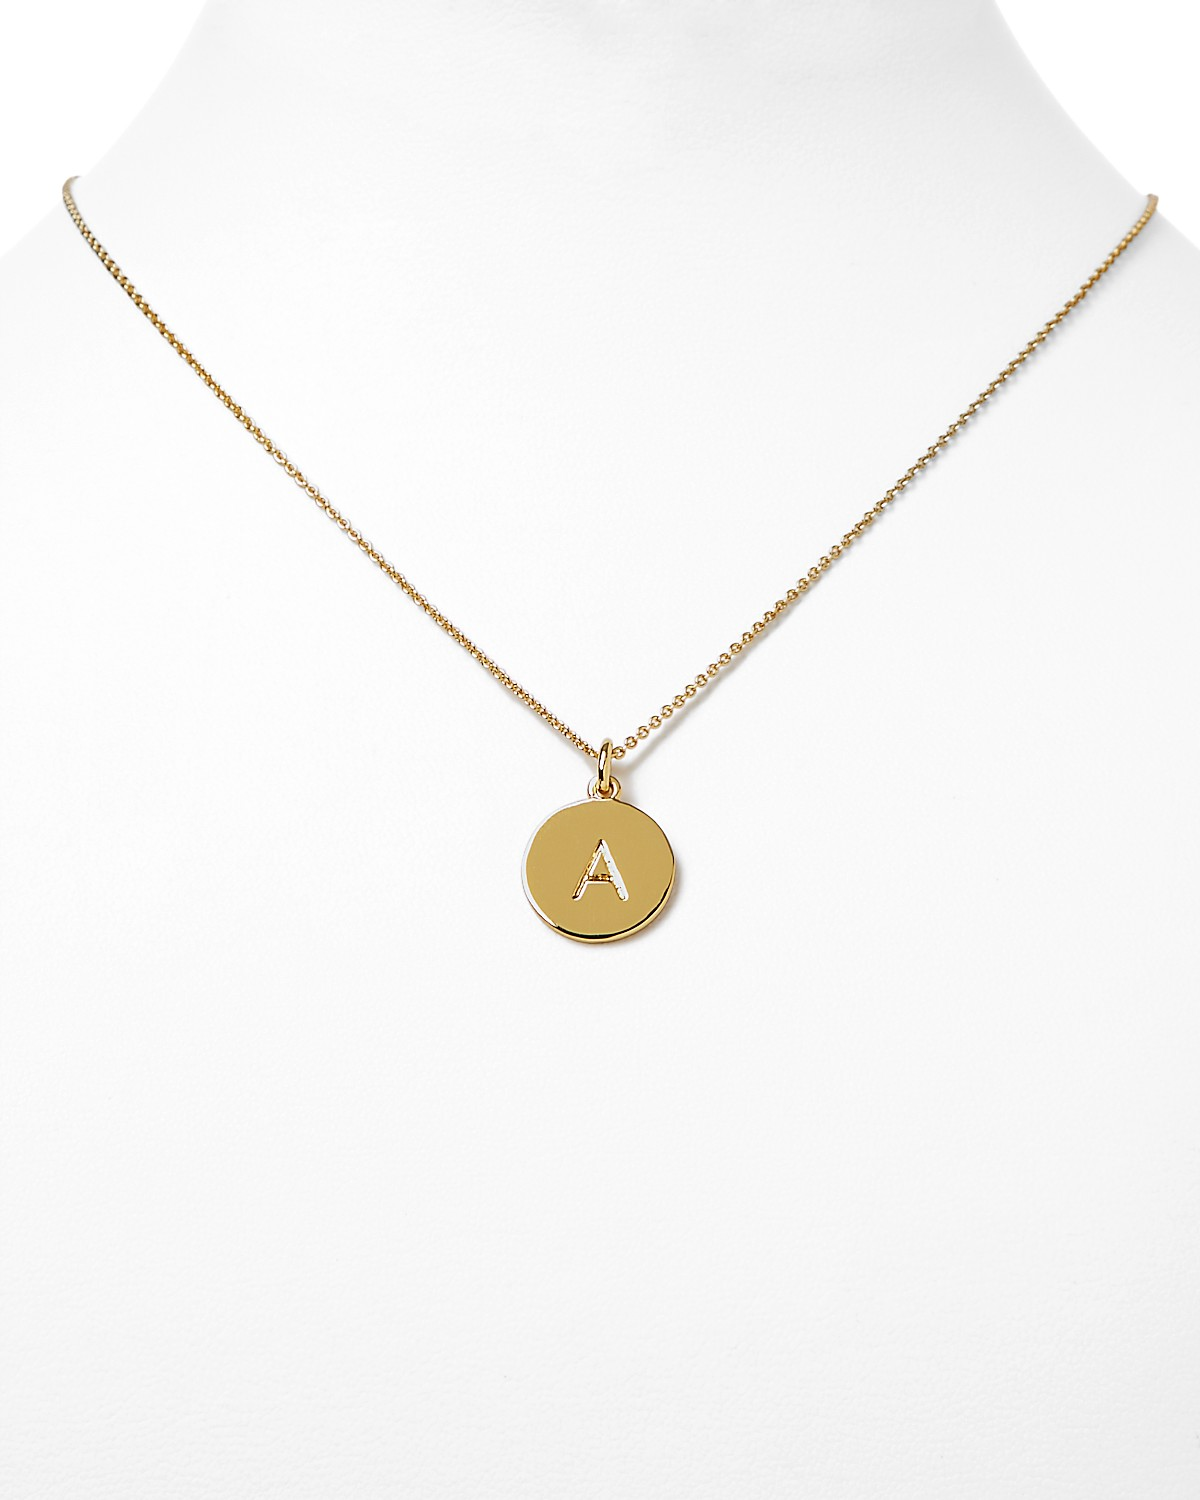 jane pendant products necklace n letter sophie gold initial vintage diamond